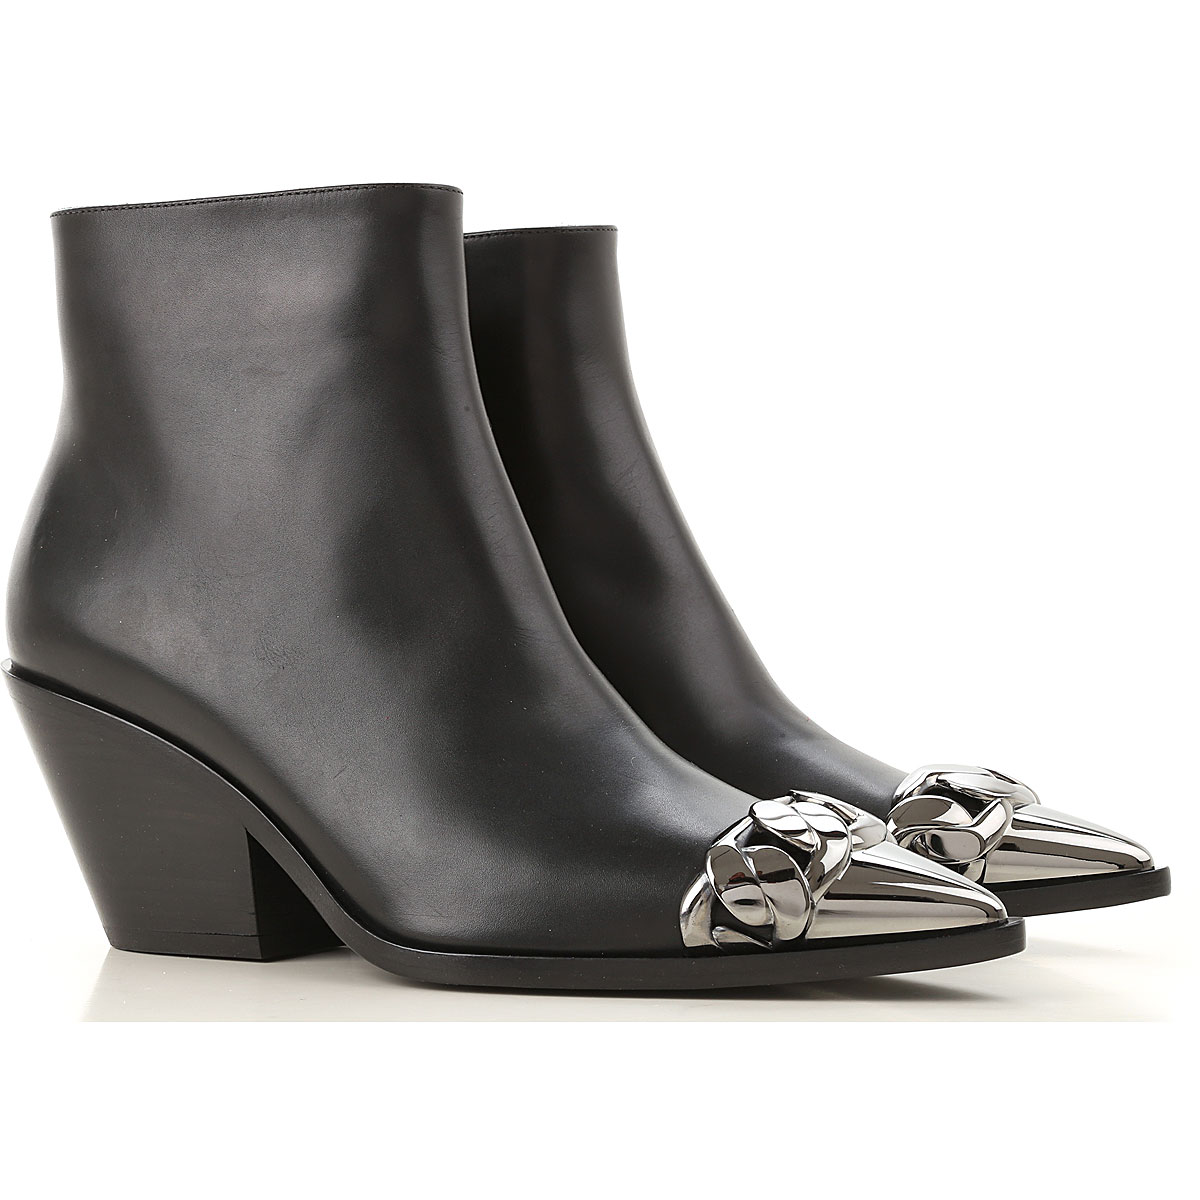 Casadei Boots for Women, Booties On Sale, Black, Leather, 2019, 10 7